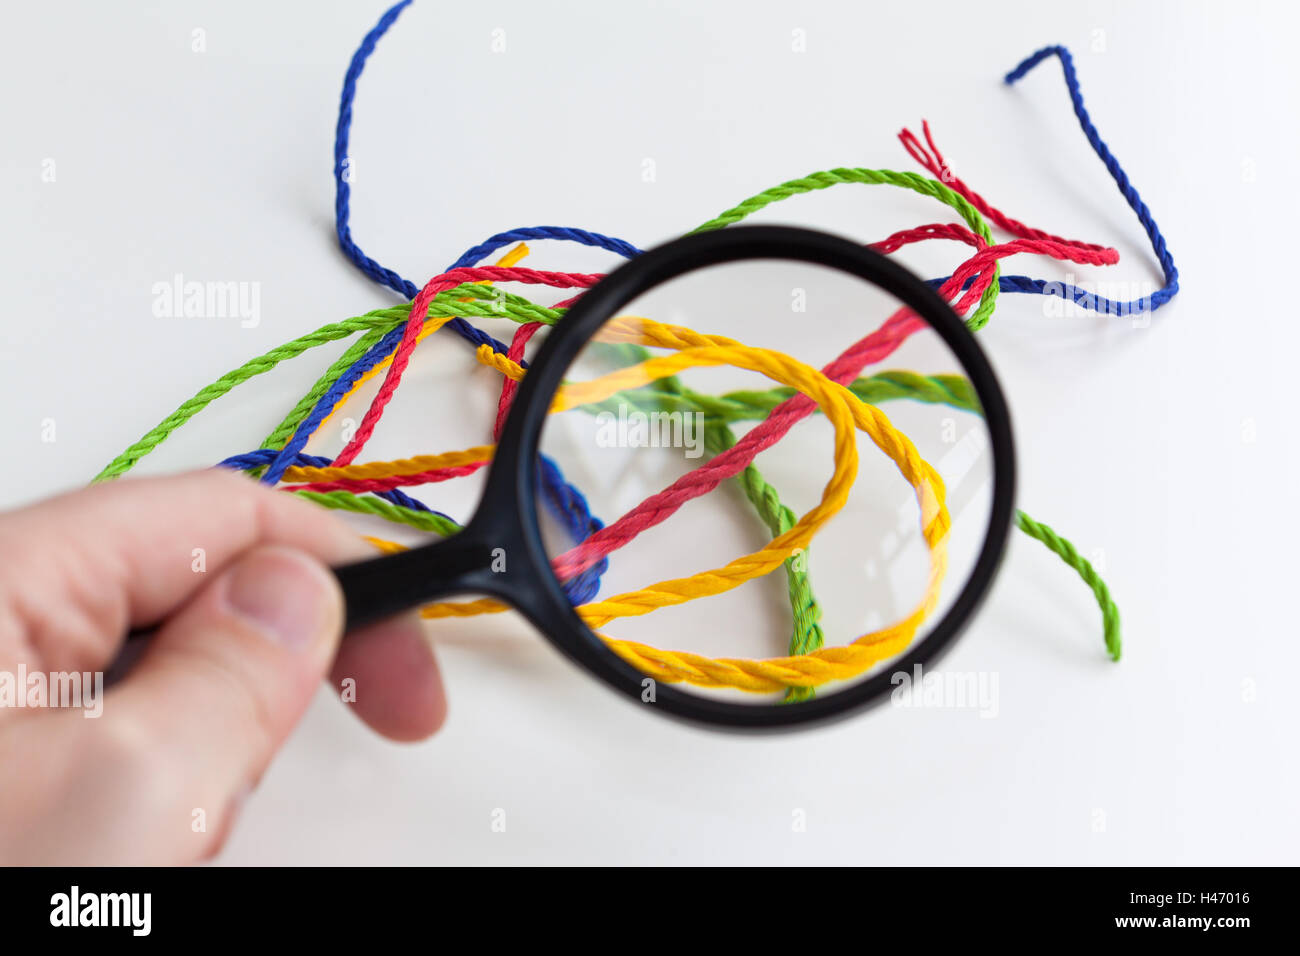 Icon picture, consideration of an entanglement, - Stock Image